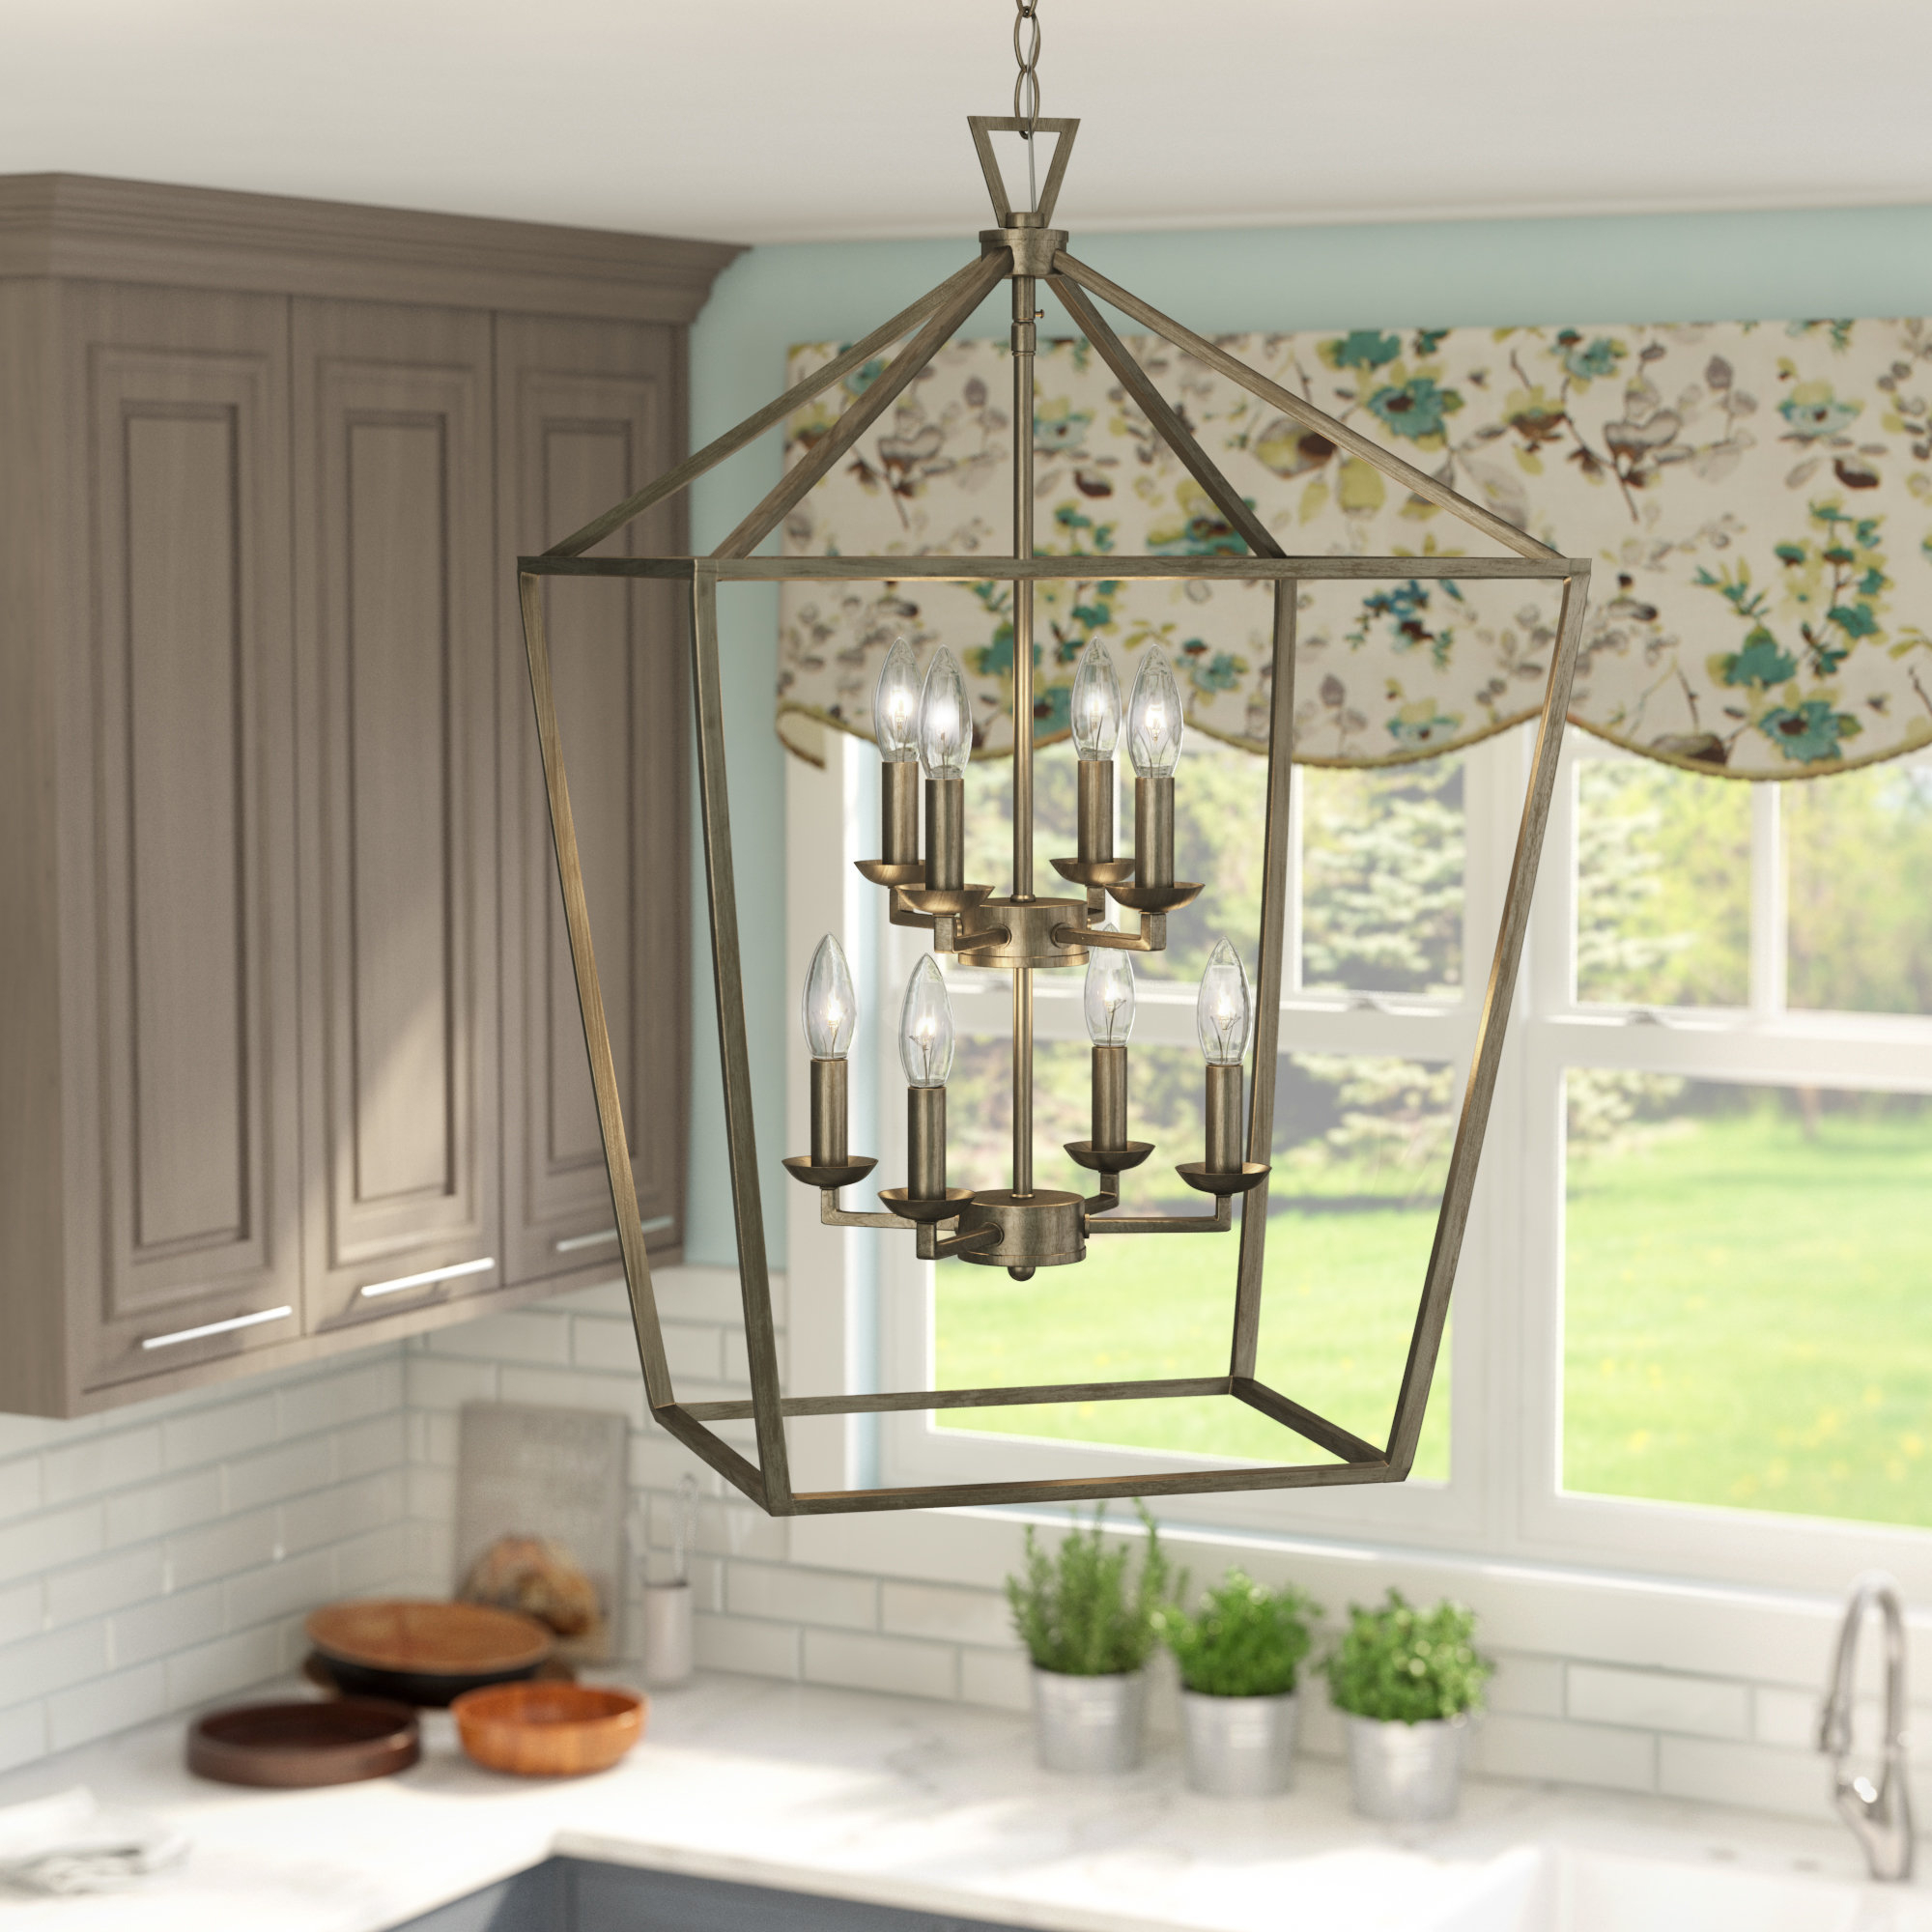 Wayfair Intended For Chauvin 3 Light Lantern Geometric Pendants (View 23 of 25)